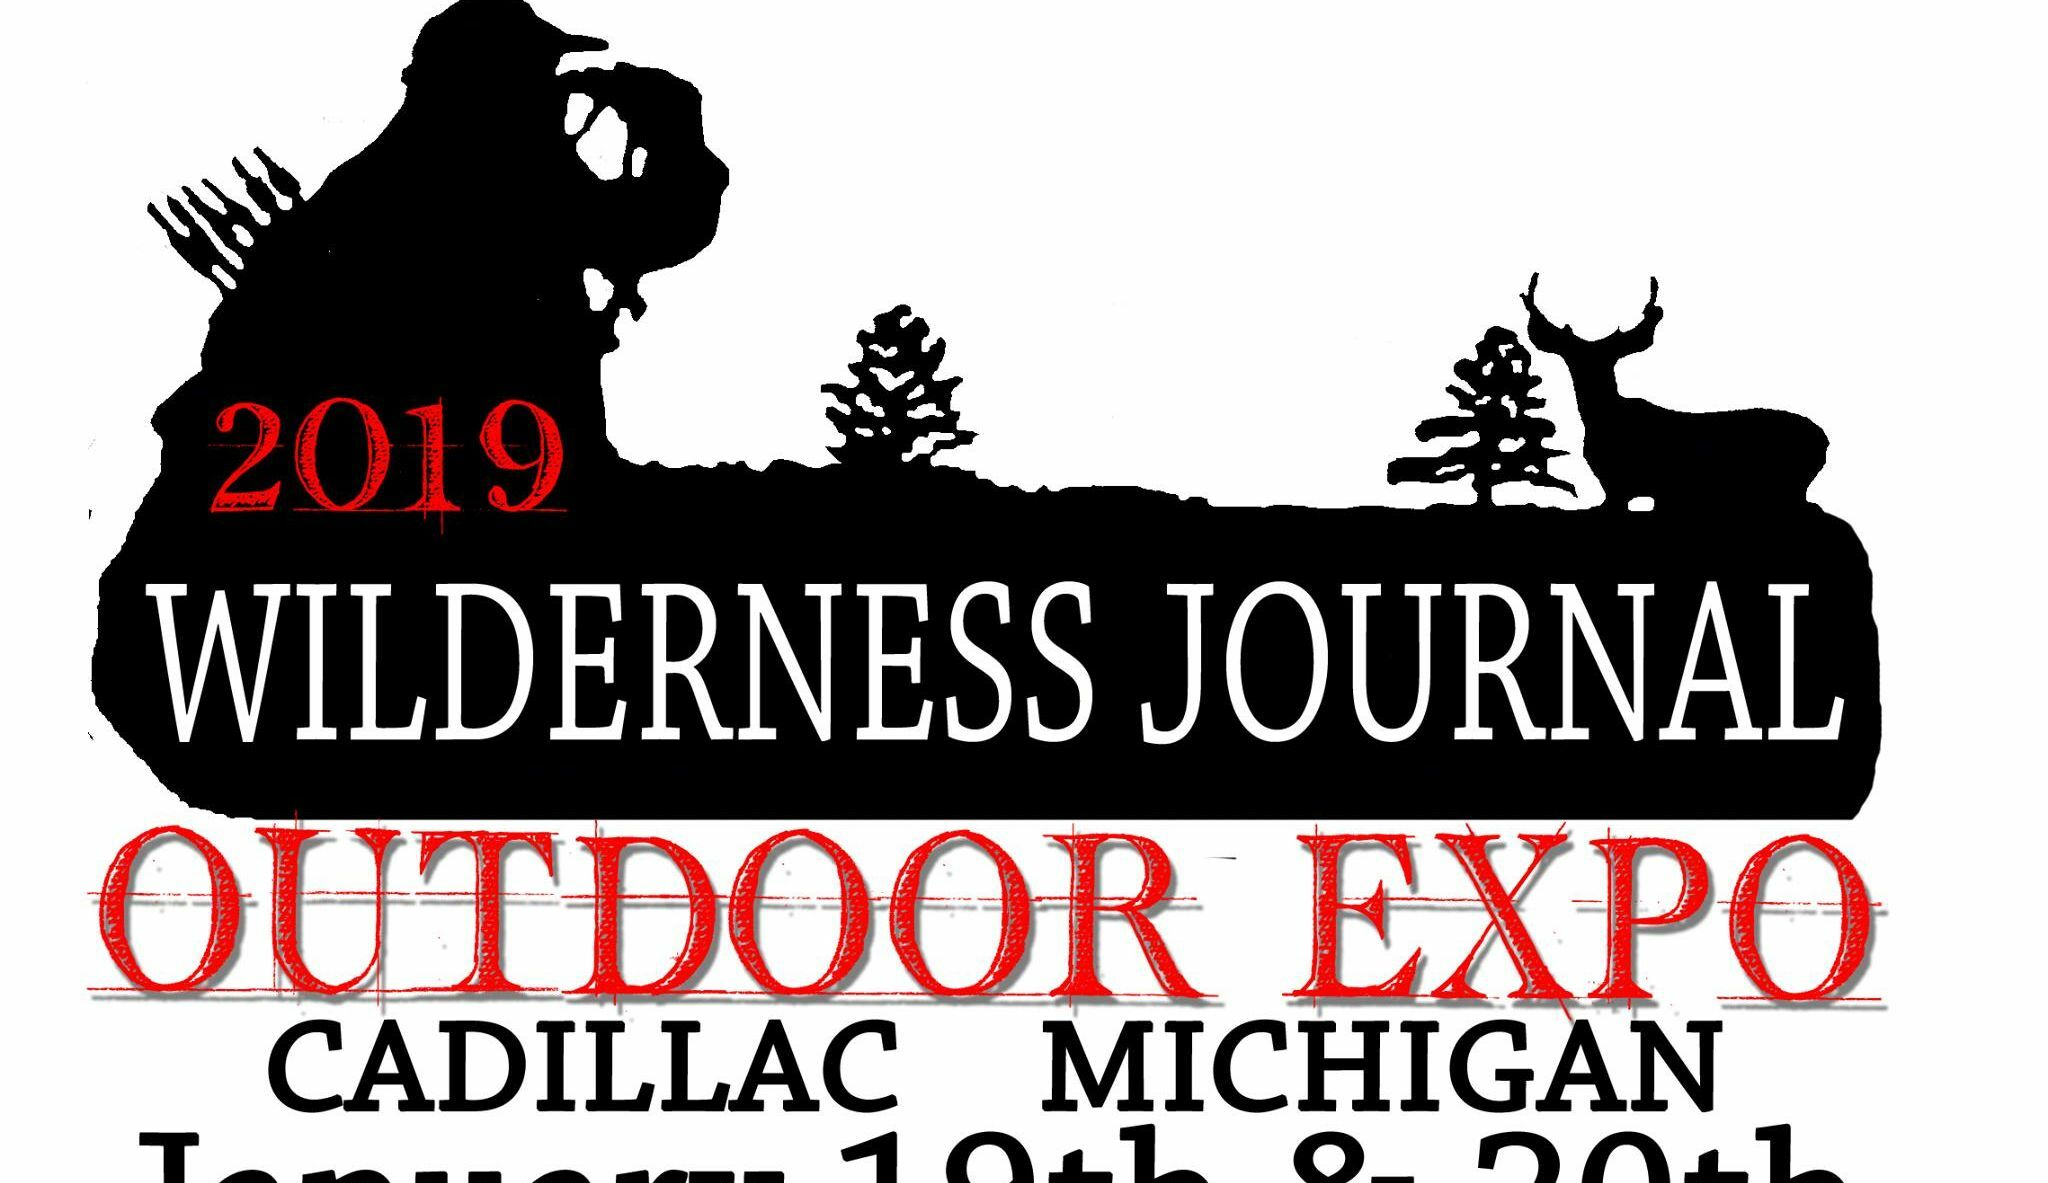 Wilderness Journal Outdoor Expo